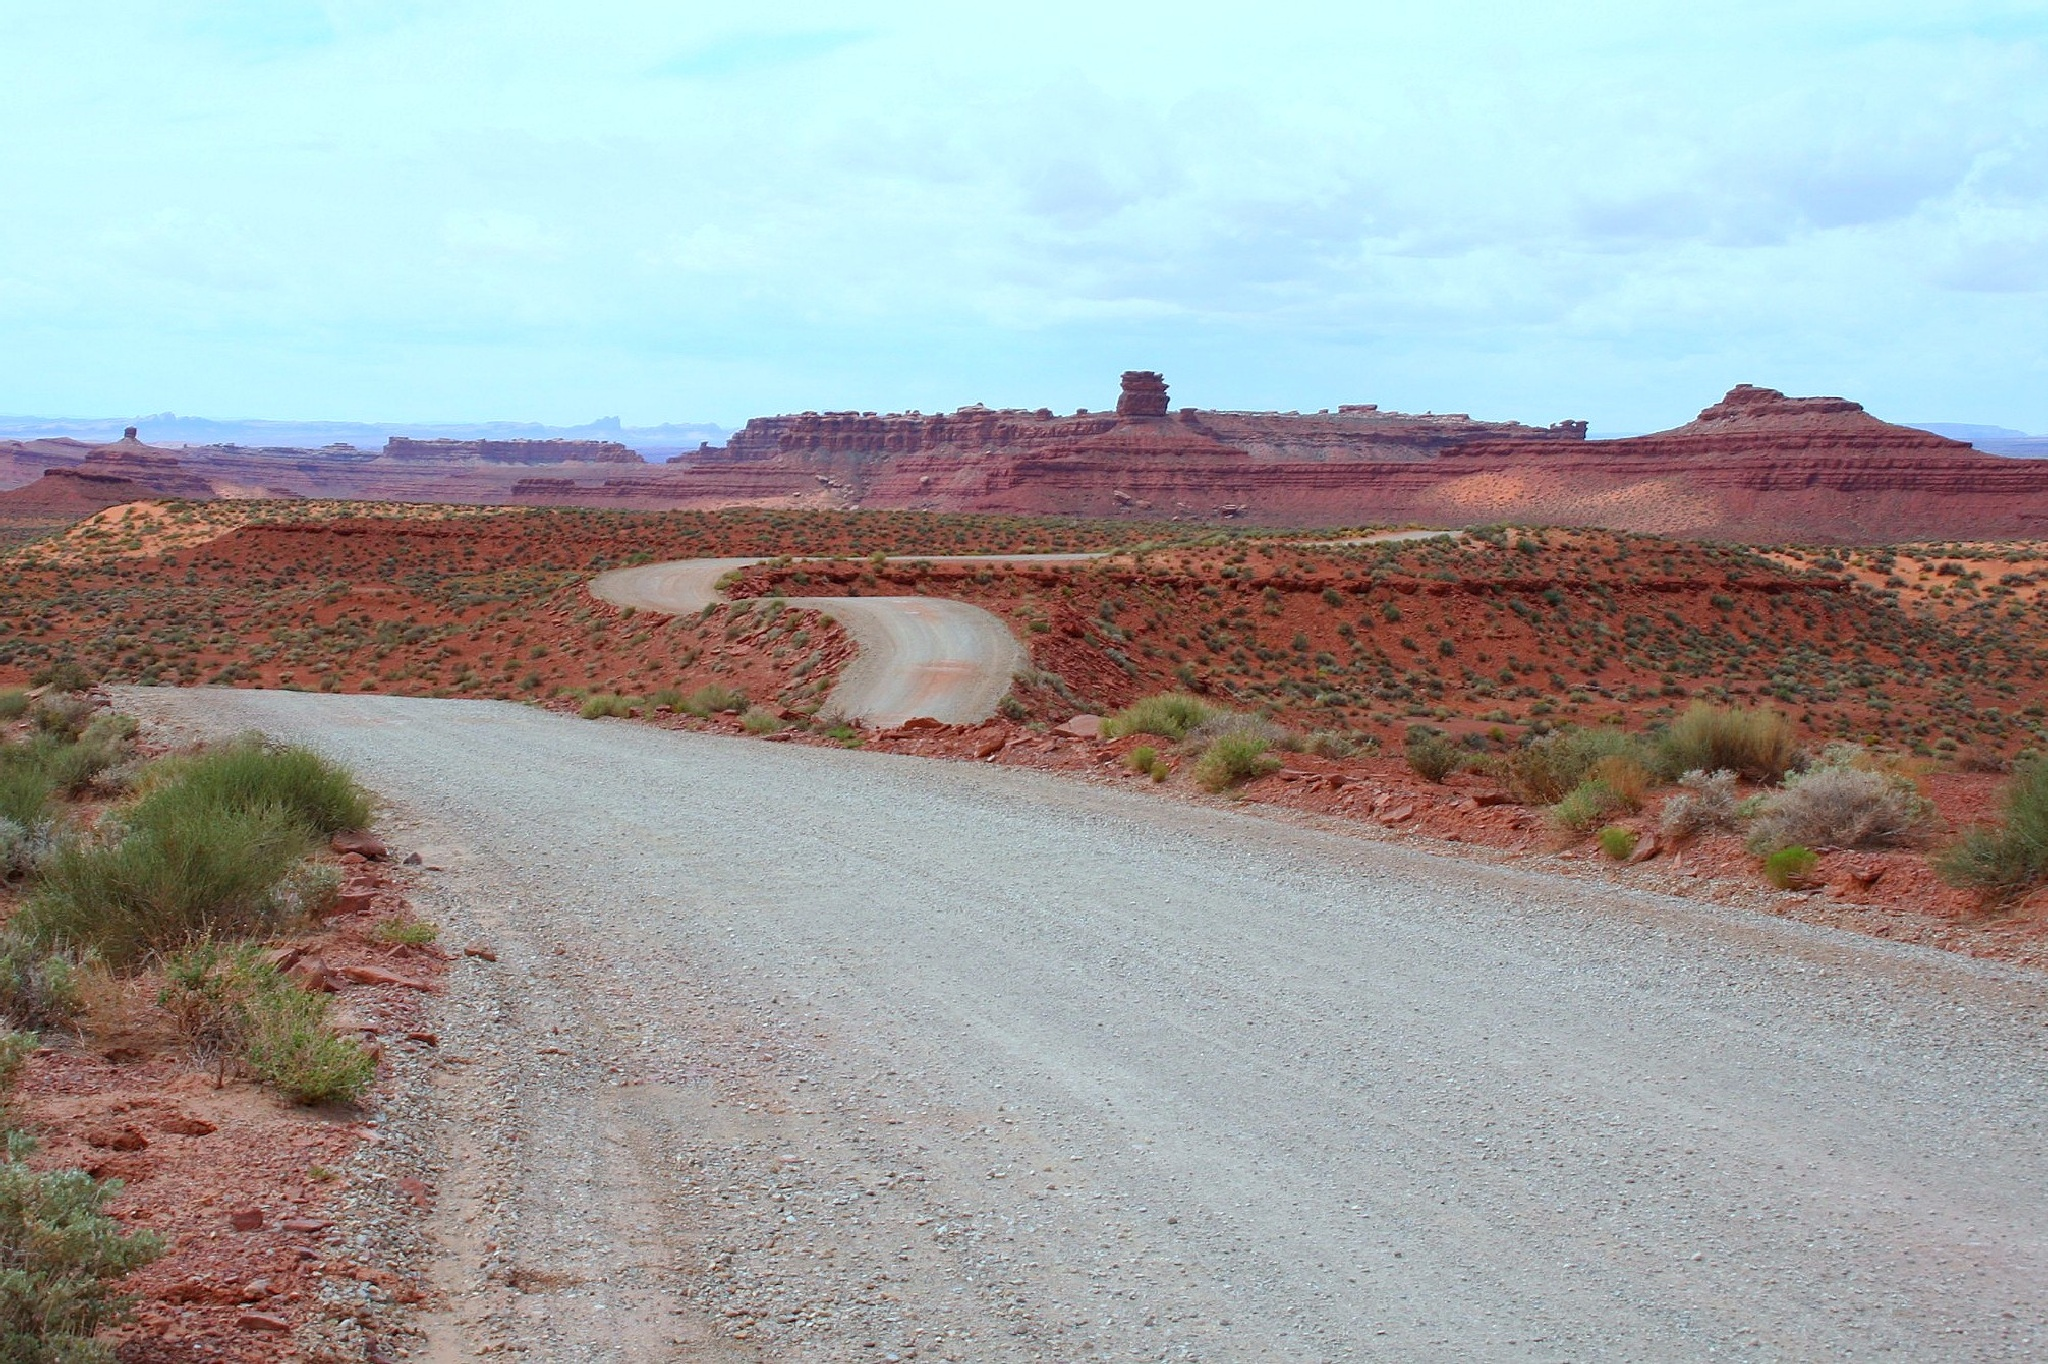 Valley of the Gods by katze